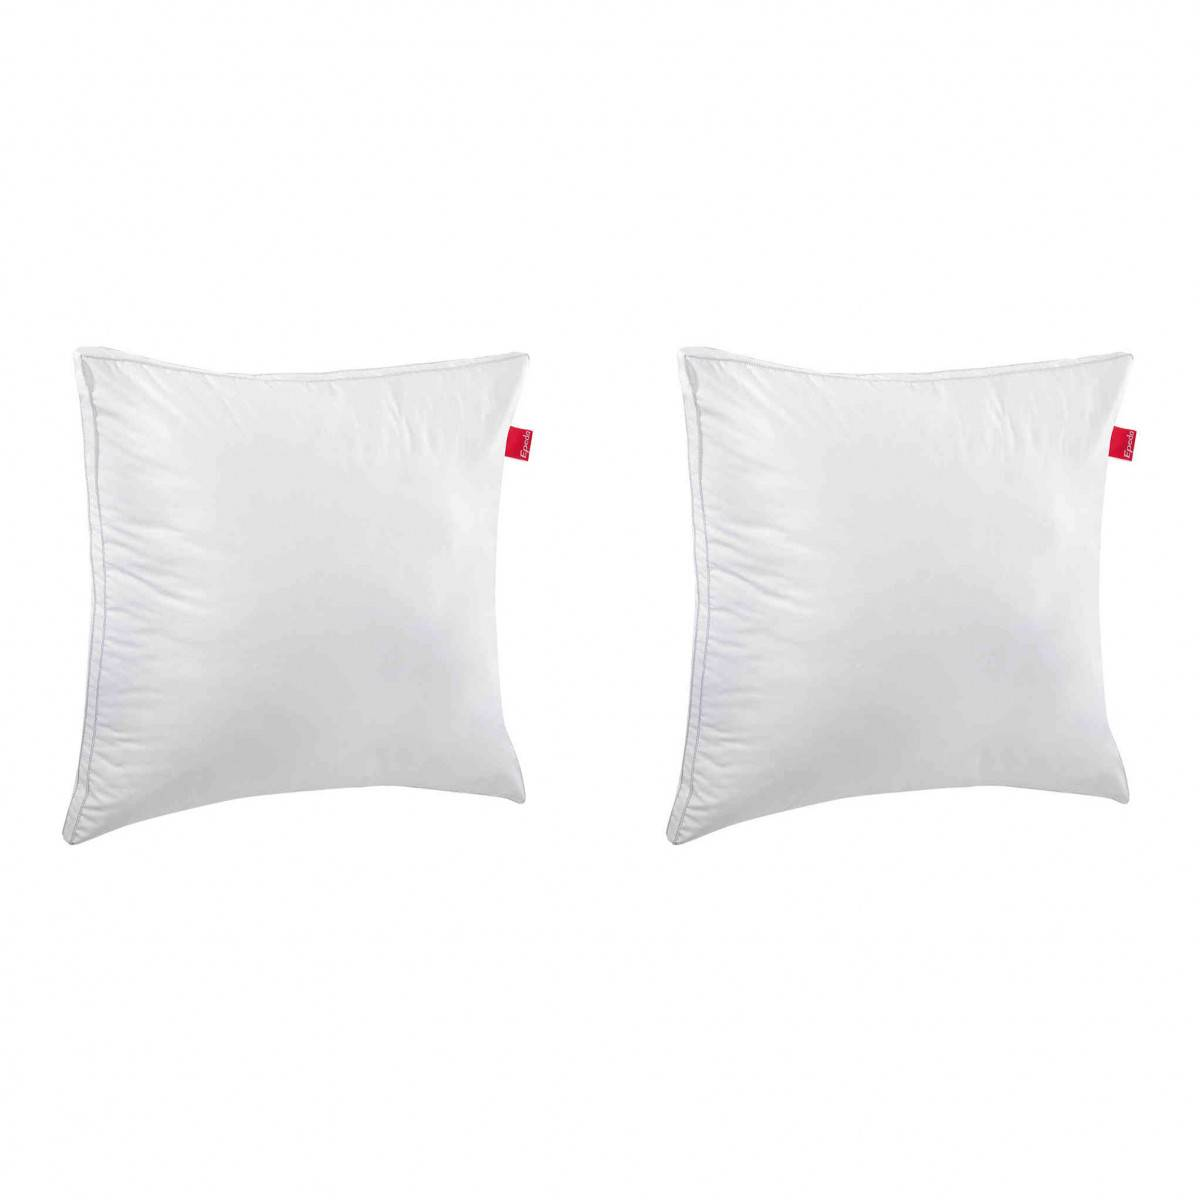 Epeda Lot de 2 oreillers EPEDA Aloe confort moelleux anti-acariens 65x65